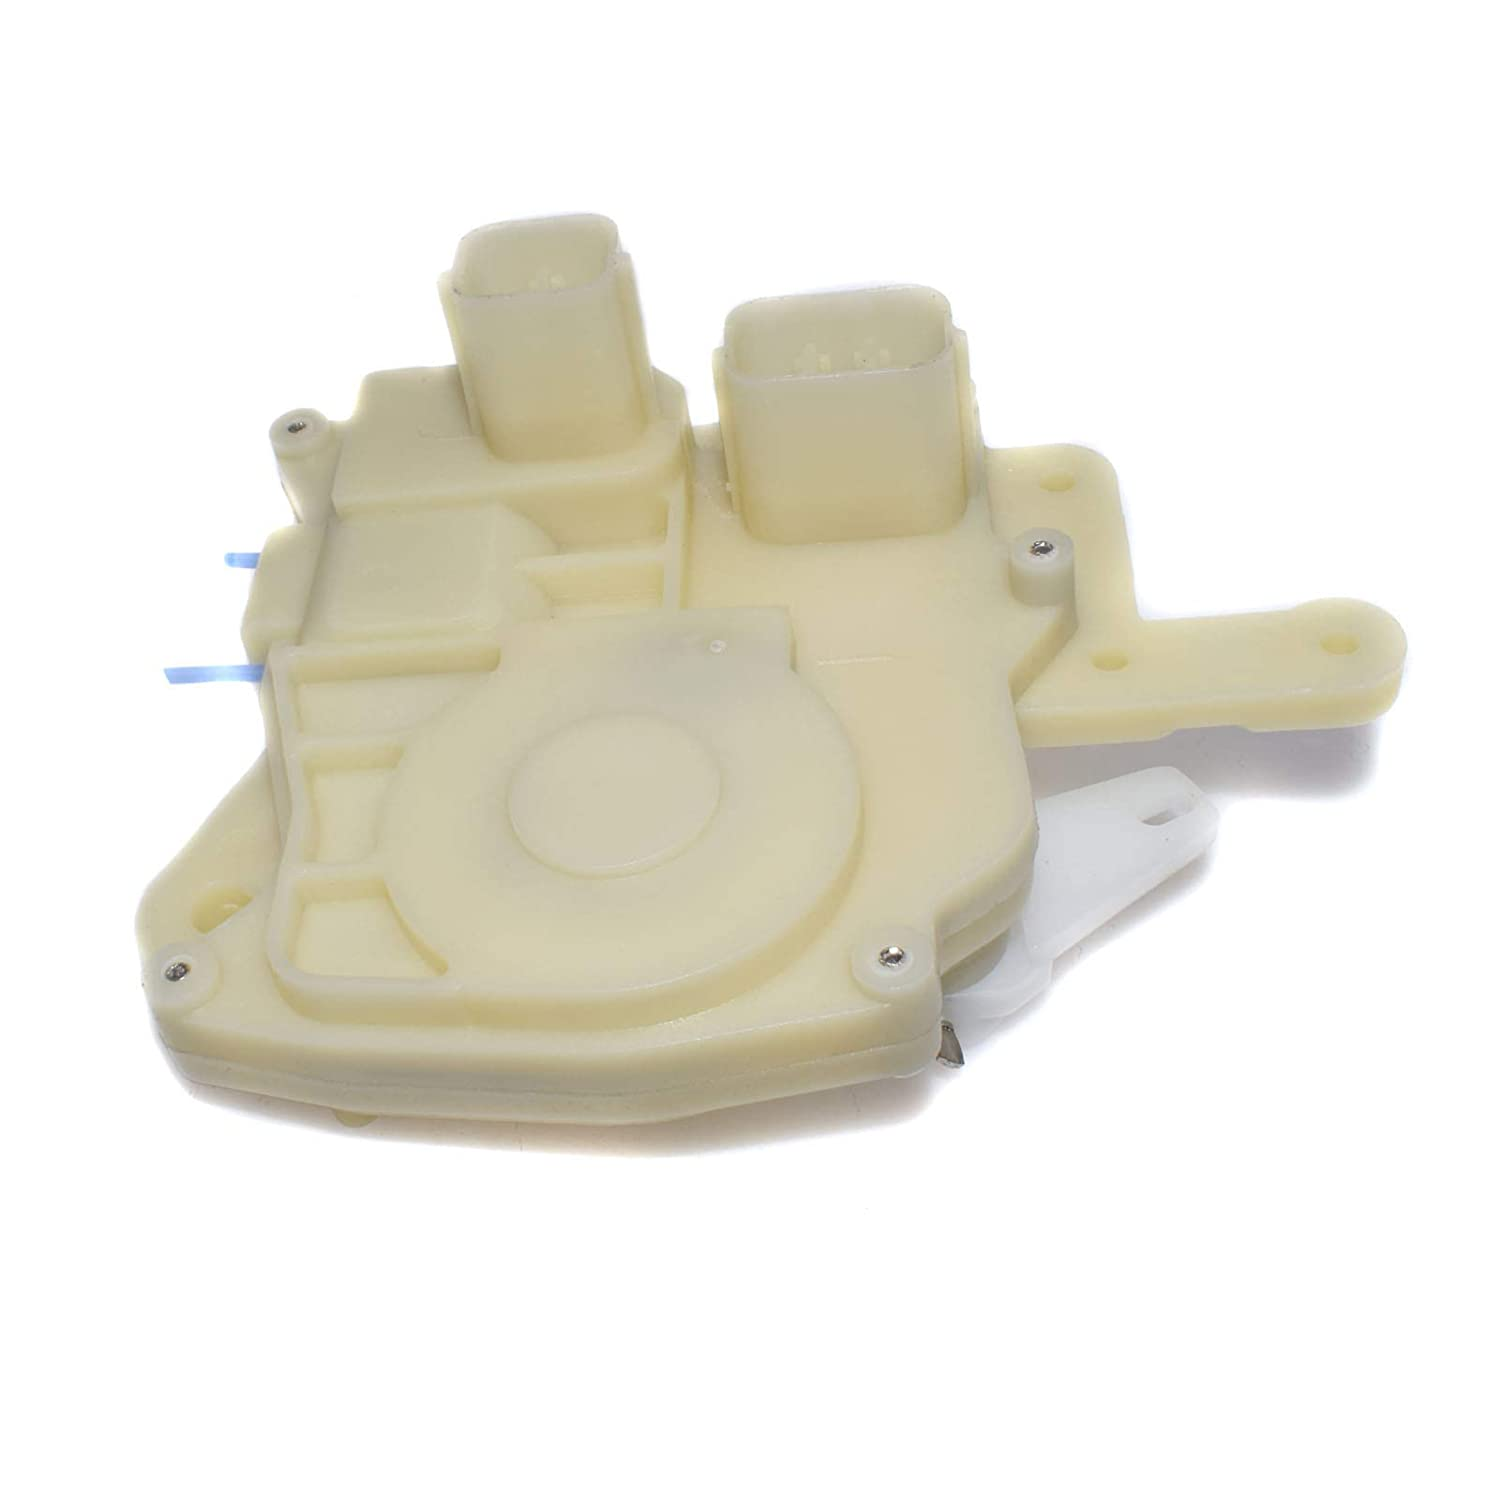 Rejog4 Auto Power Door Lock Actuator Front Left New 72155S84A11 for Honda Odyssey Civic Insight S2000 1998-2009